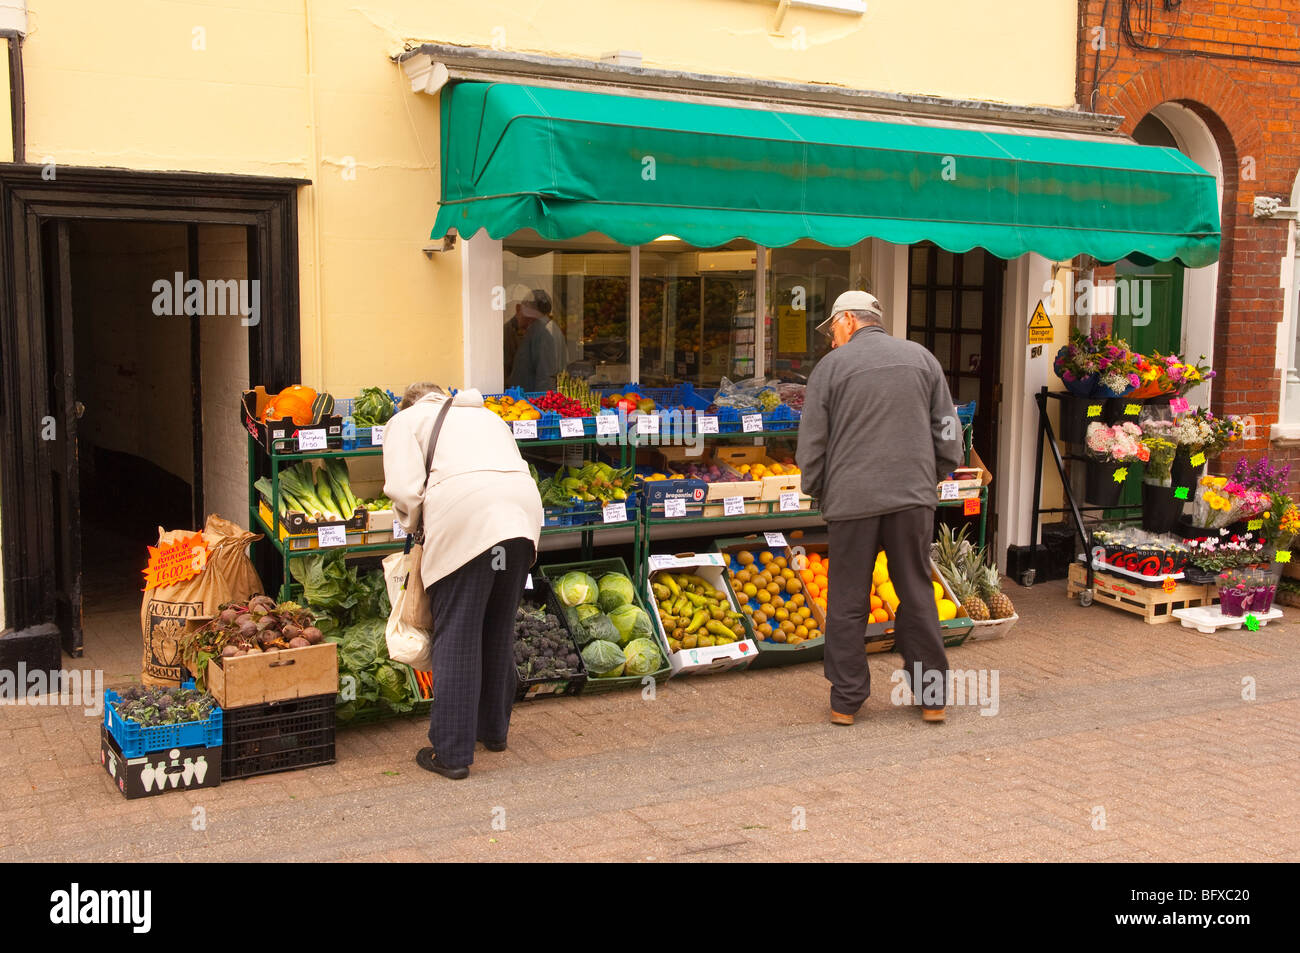 A greengrocers shop store with people choosing their fruit & veg in the high street in Halesworth,Suffolk,Uk - Stock Image